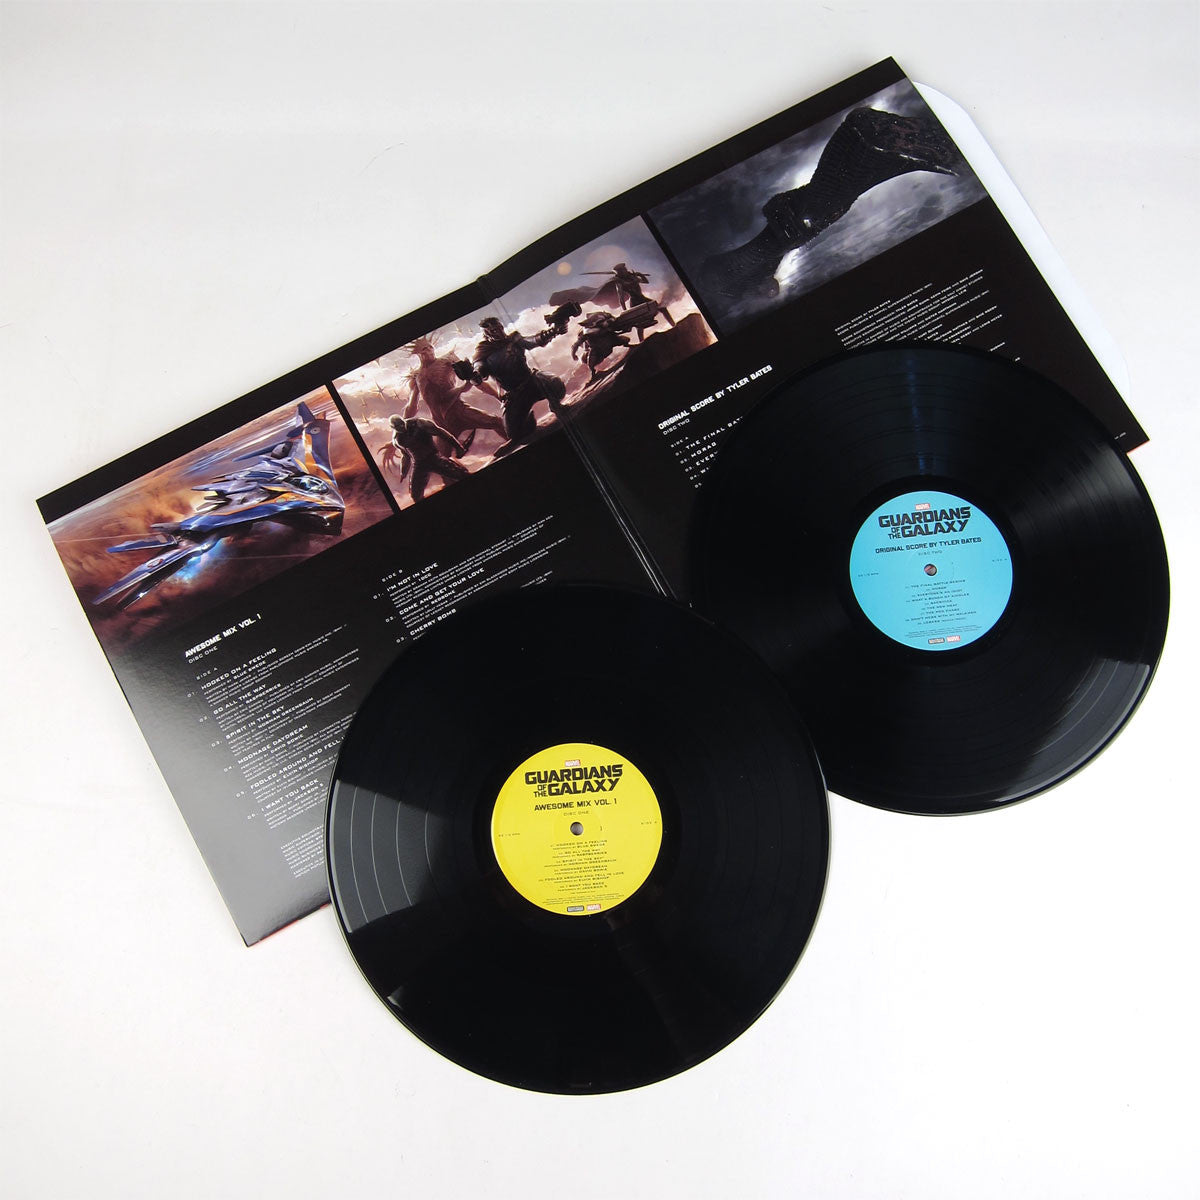 Guardians Of The Galaxy: Soundtrack - Songs From + Original Score Deluxe Vinyl Edition 2LP detail